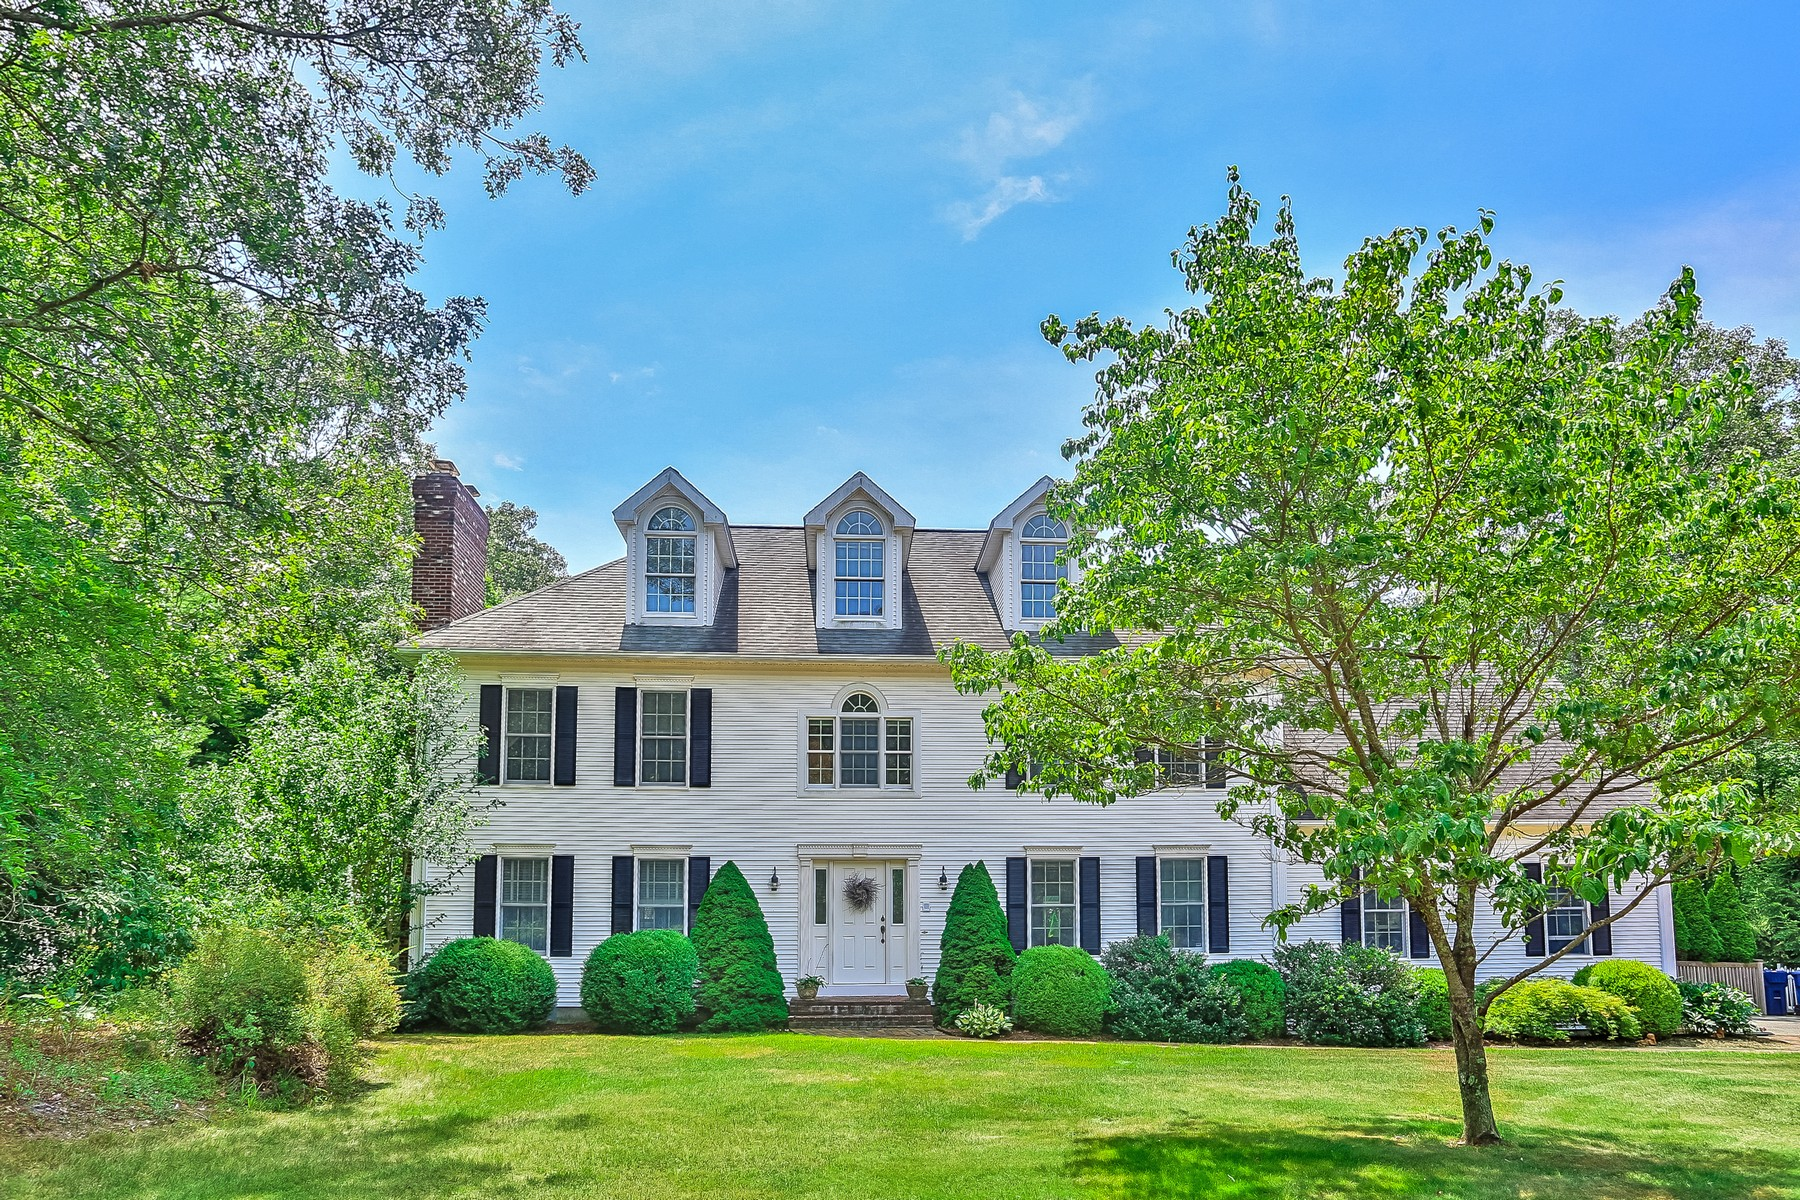 Single Family Home for Sale at Attention To Detail Abounds 3 Squire Hl Old Lyme, Connecticut, 06371 United States